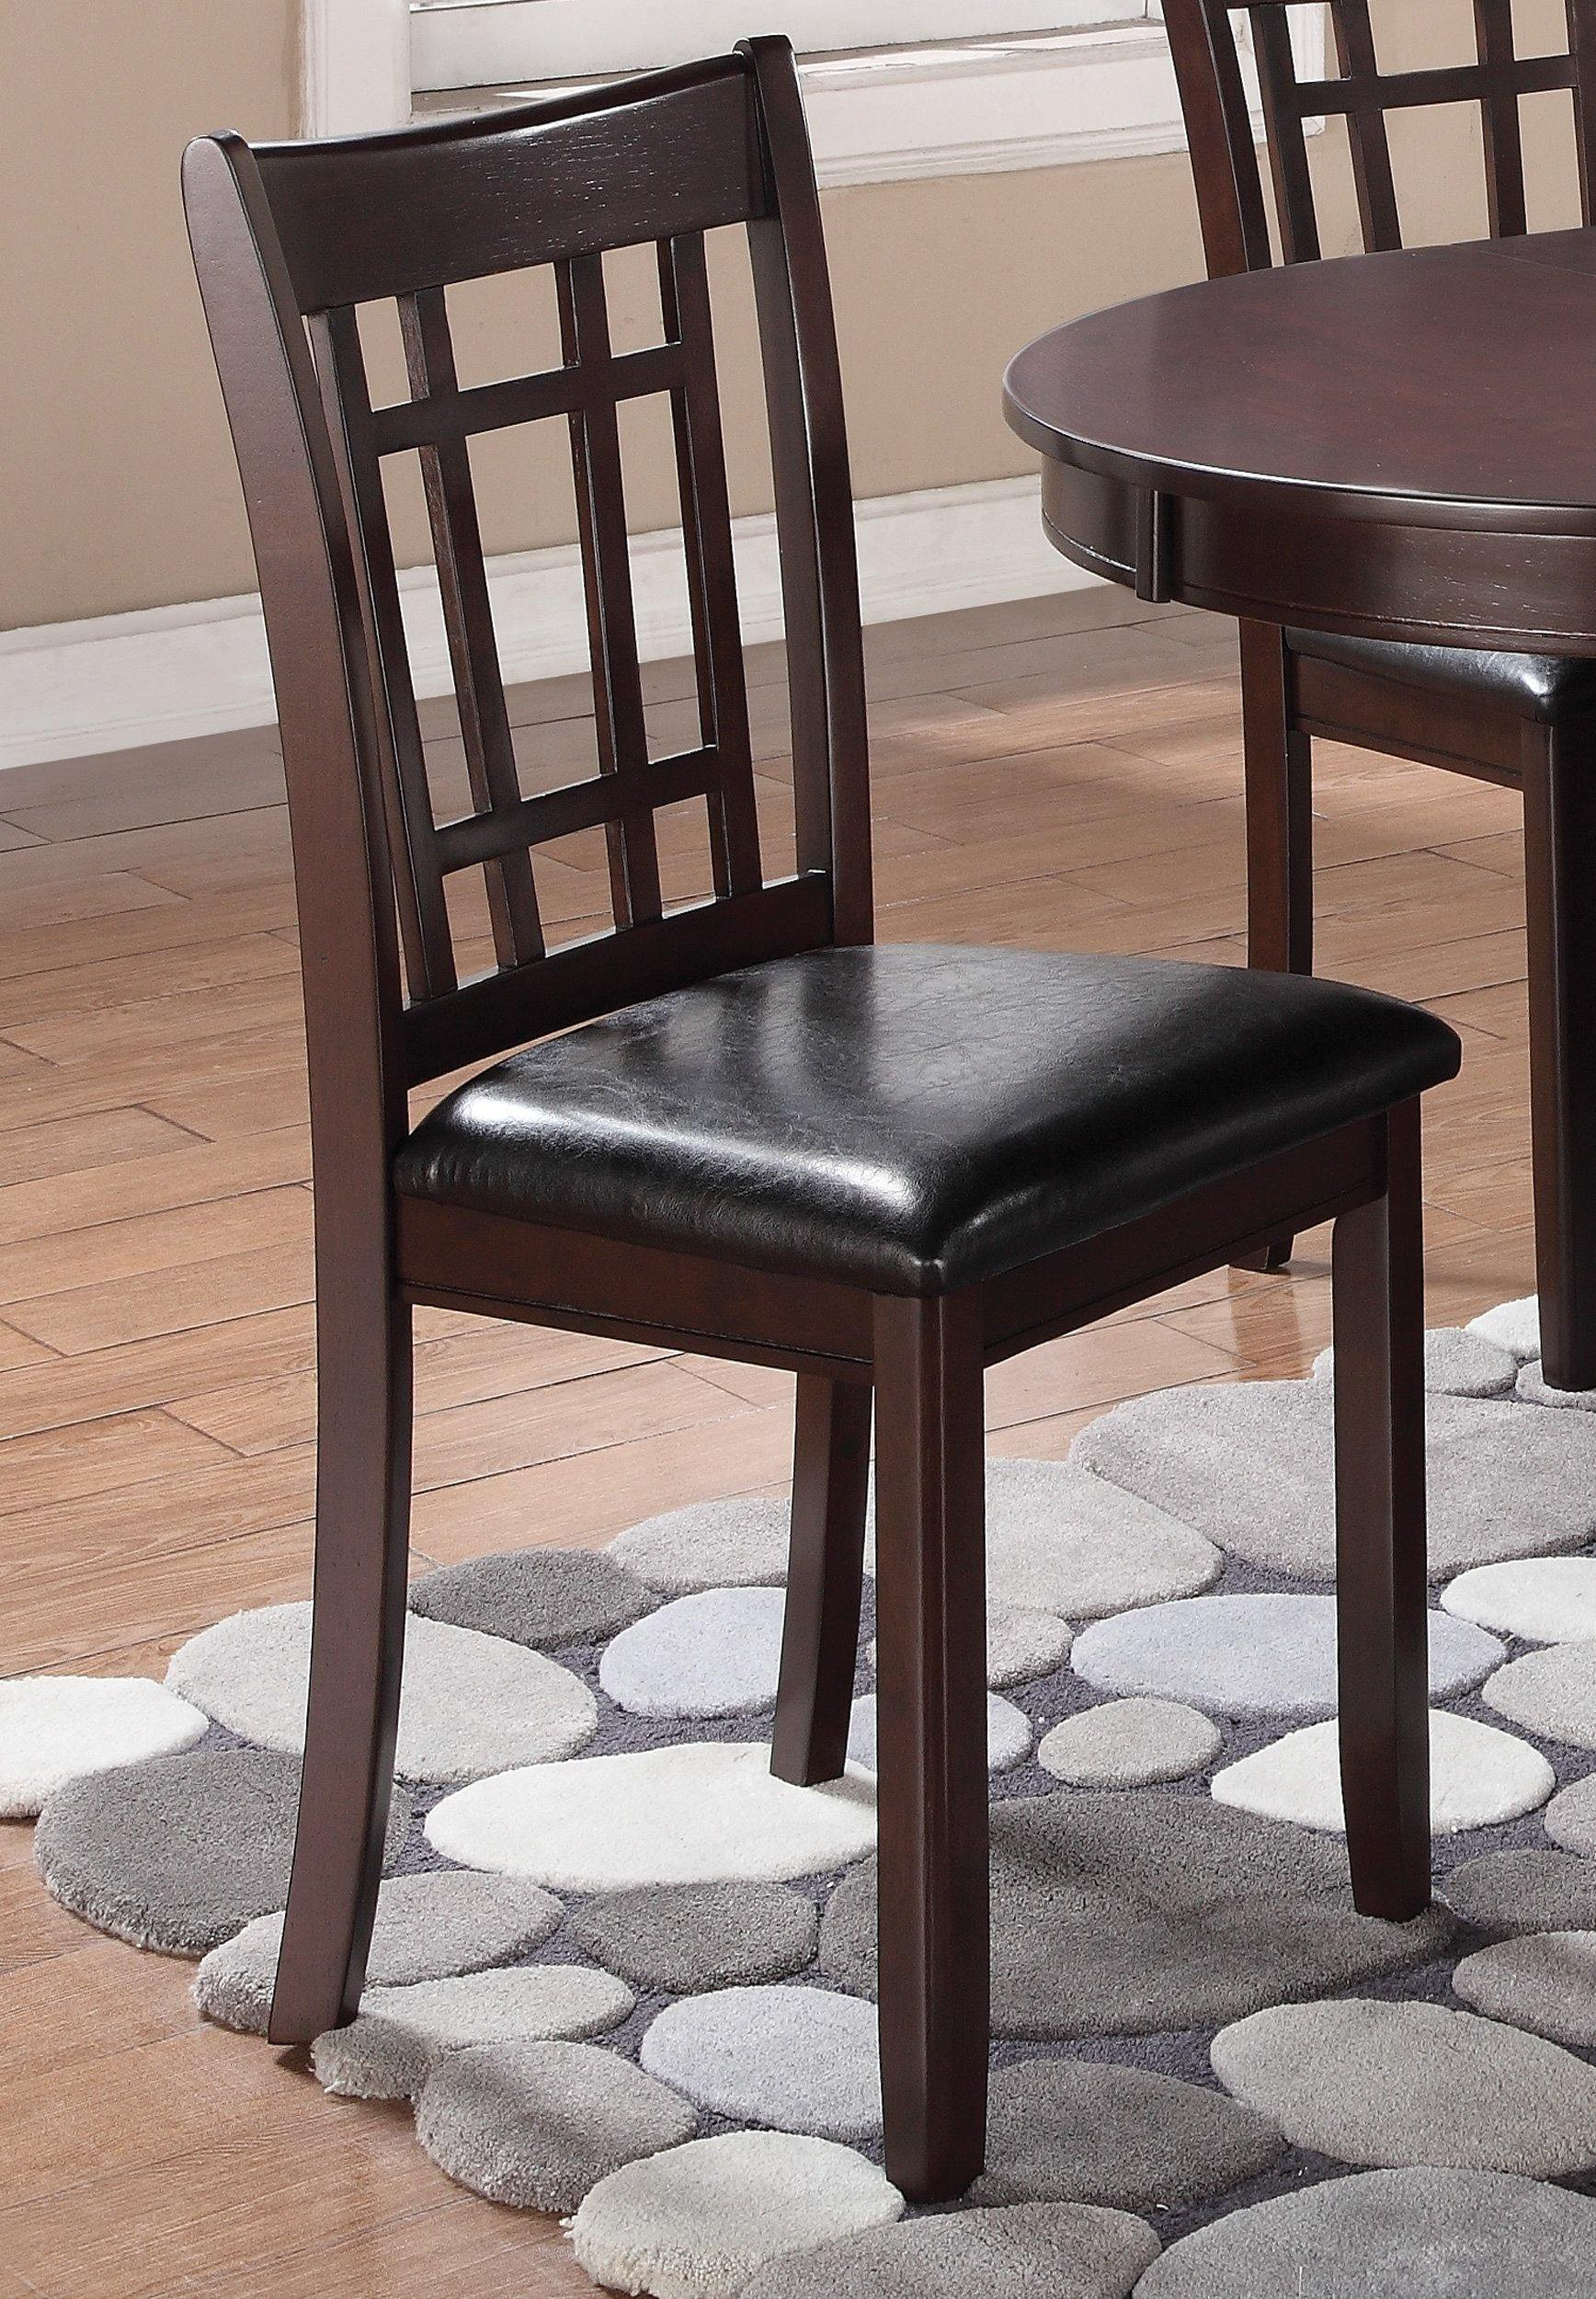 Lavon 102672 Dining Chair1 By coaster - sofafair.com